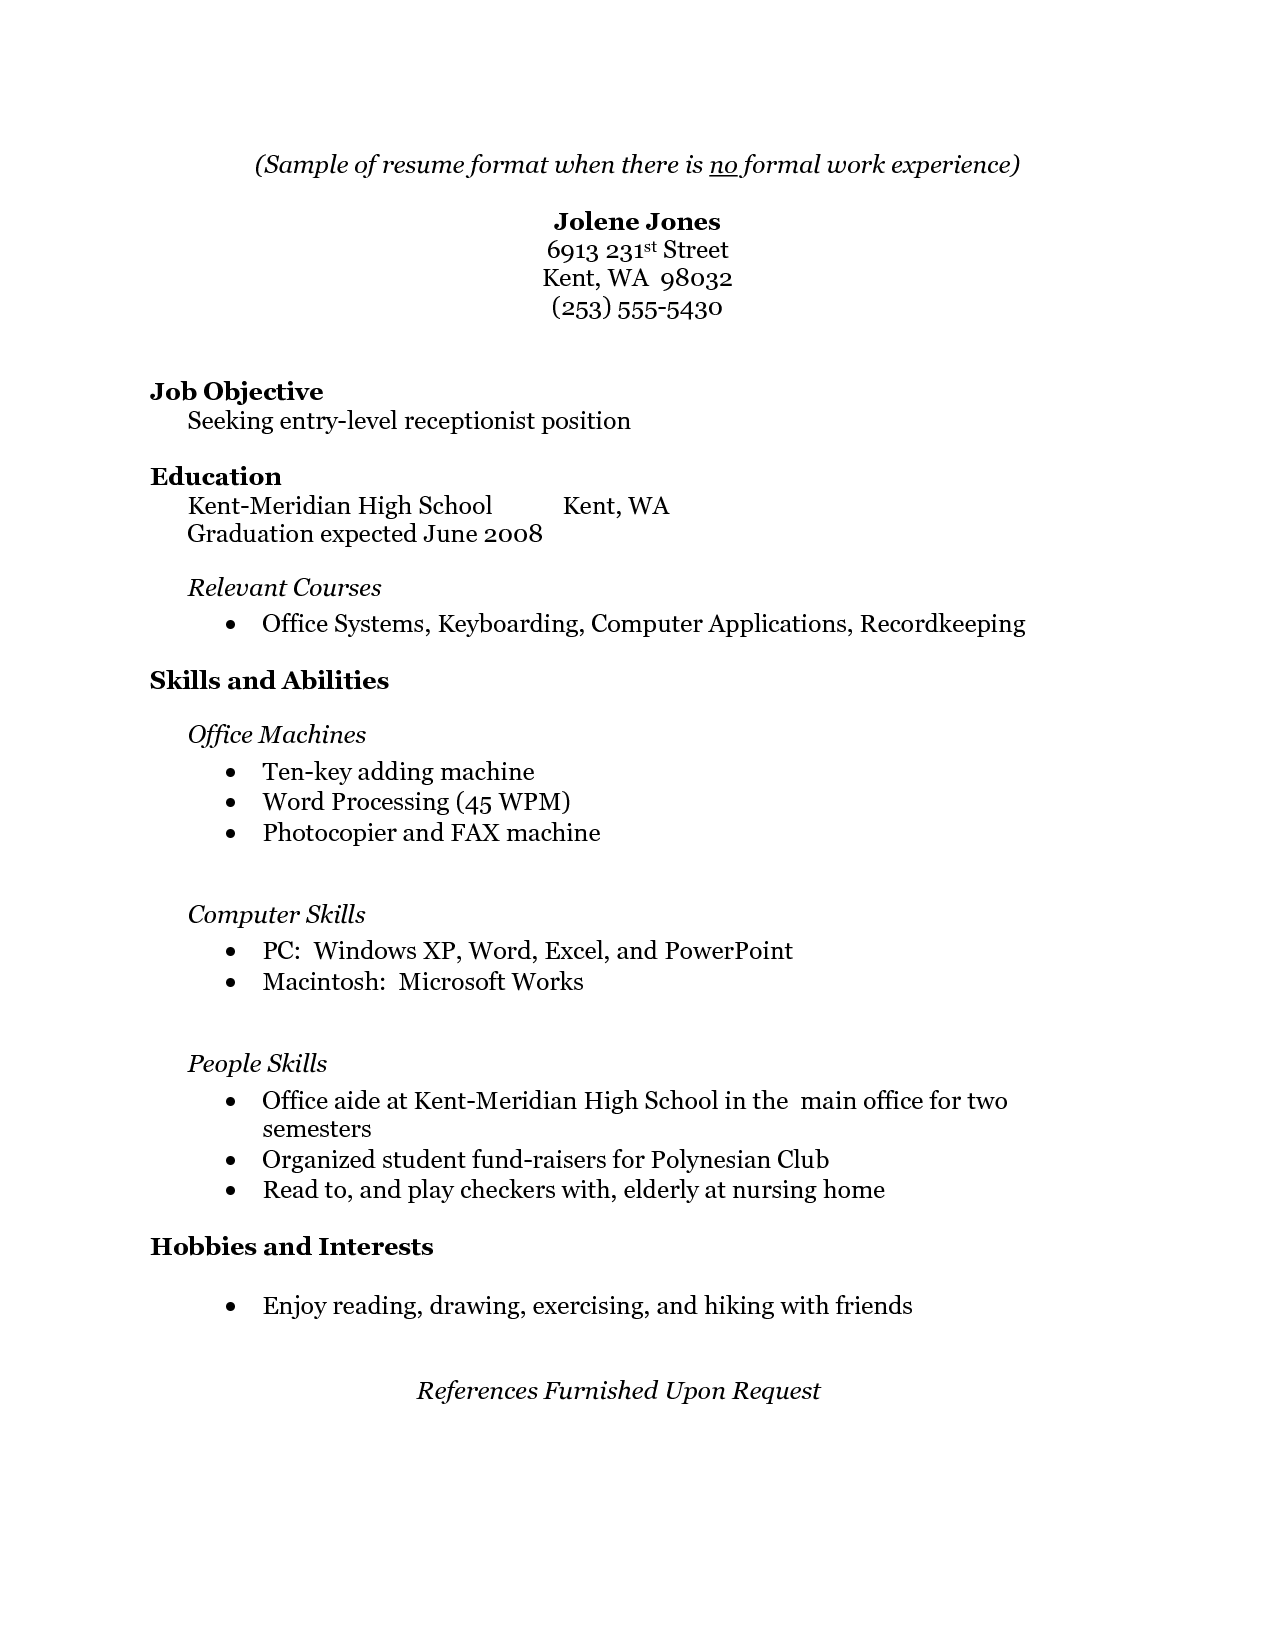 A High School Resume With No Experience Http Www Jobresume